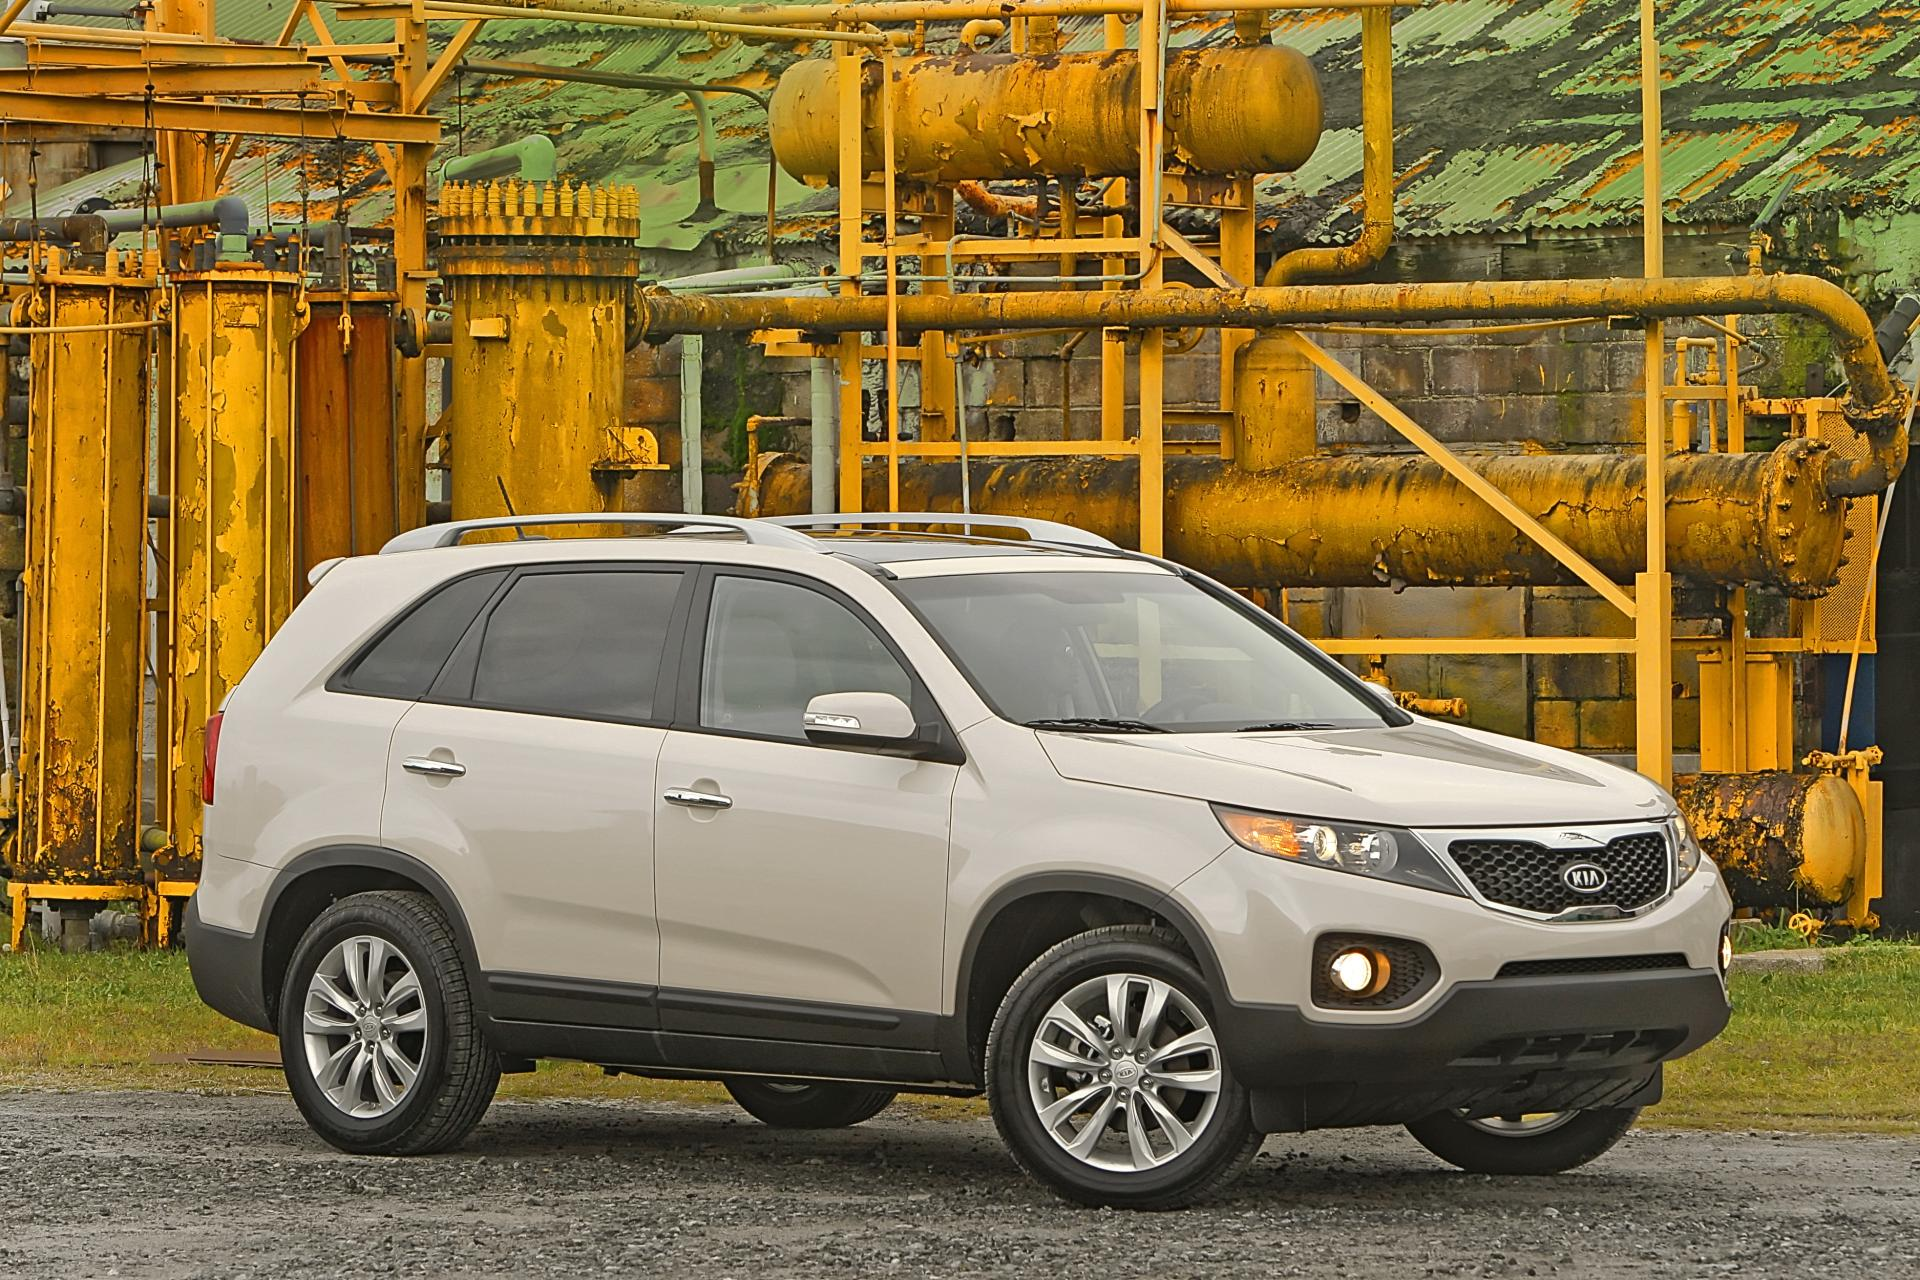 Kia Sorento: Driver position memory system (if equipped, for power seat)